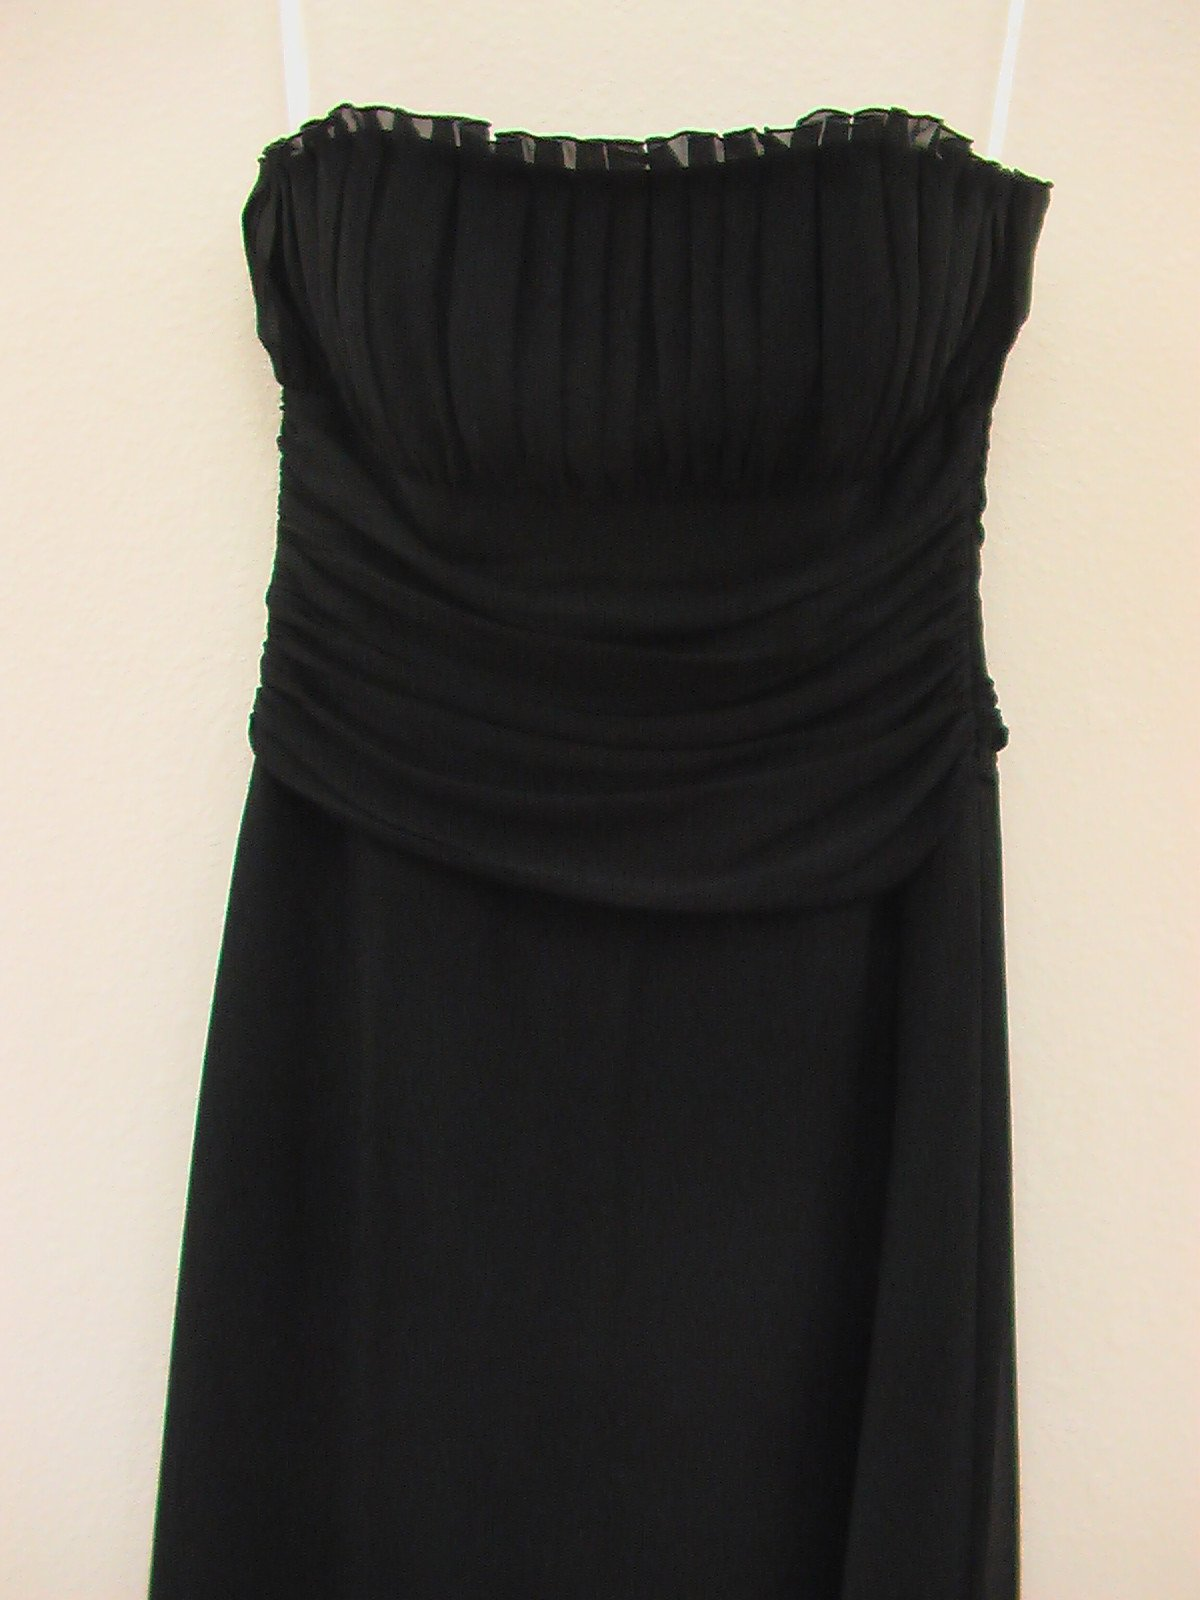 Jasmine B2 B1039 Black size 10 In Stock Bridesmaid Dress - Tom's Bridal